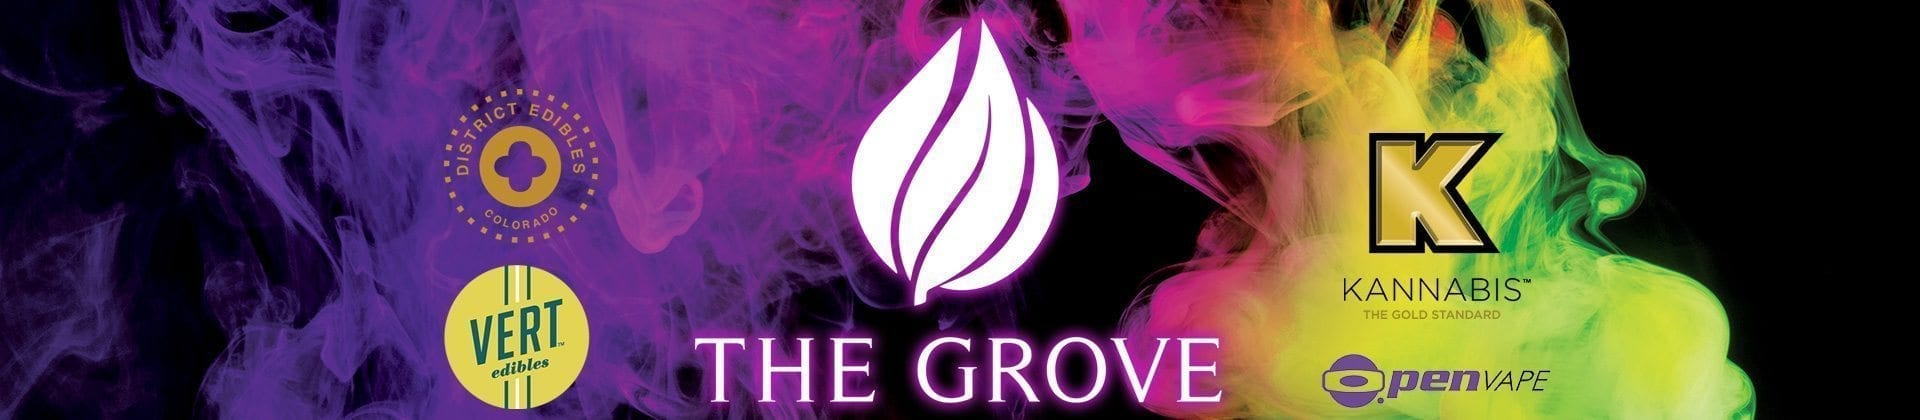 The Grove Ad Banner